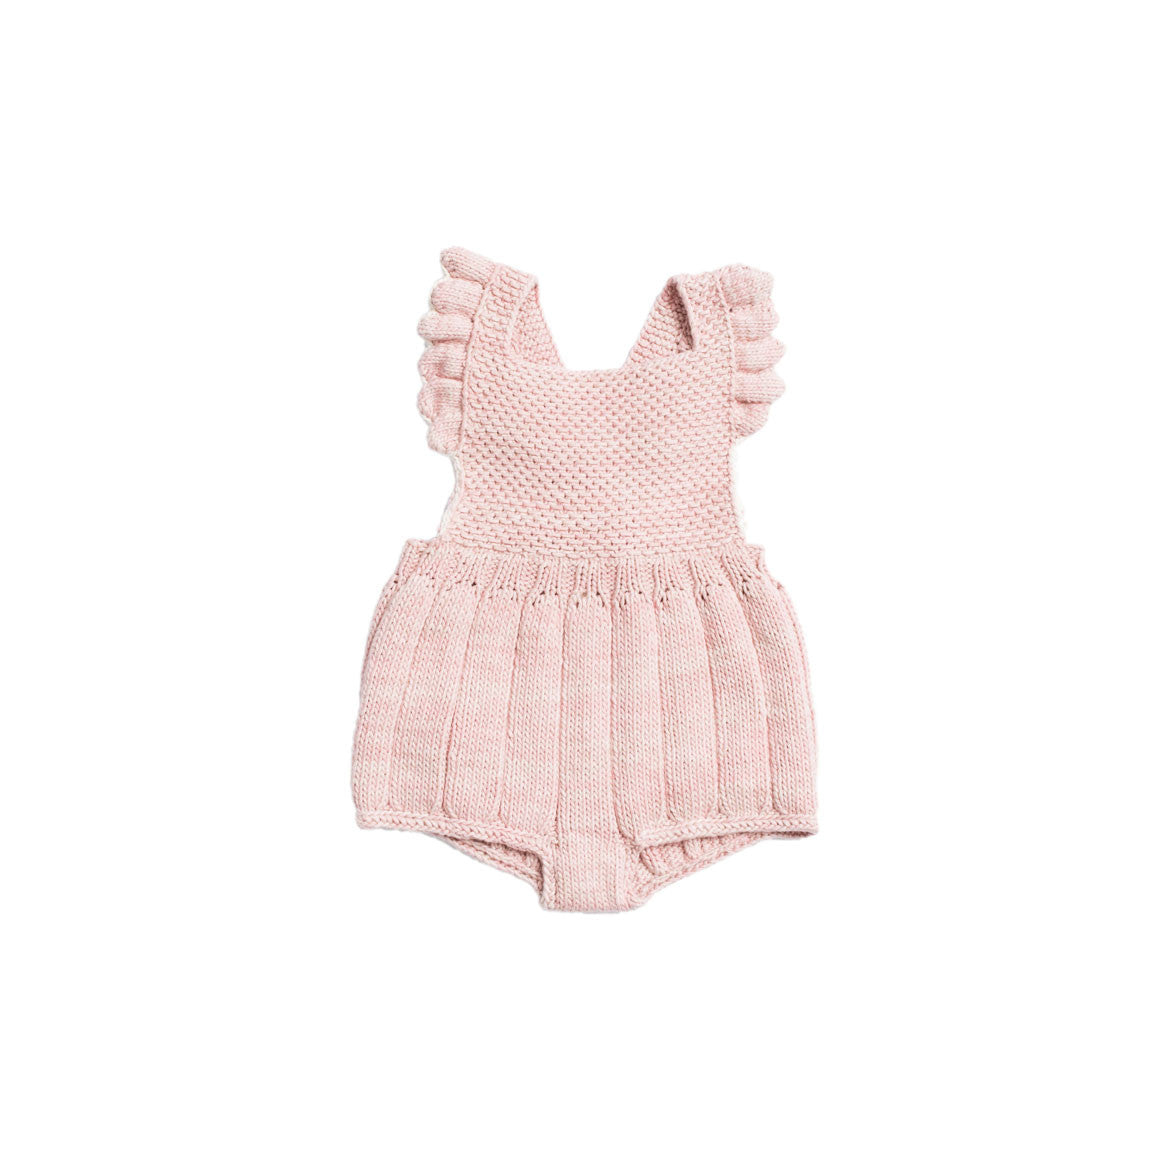 Misha & Puff Pink Sand/Natural Eleanor Sunsuit - Ladida